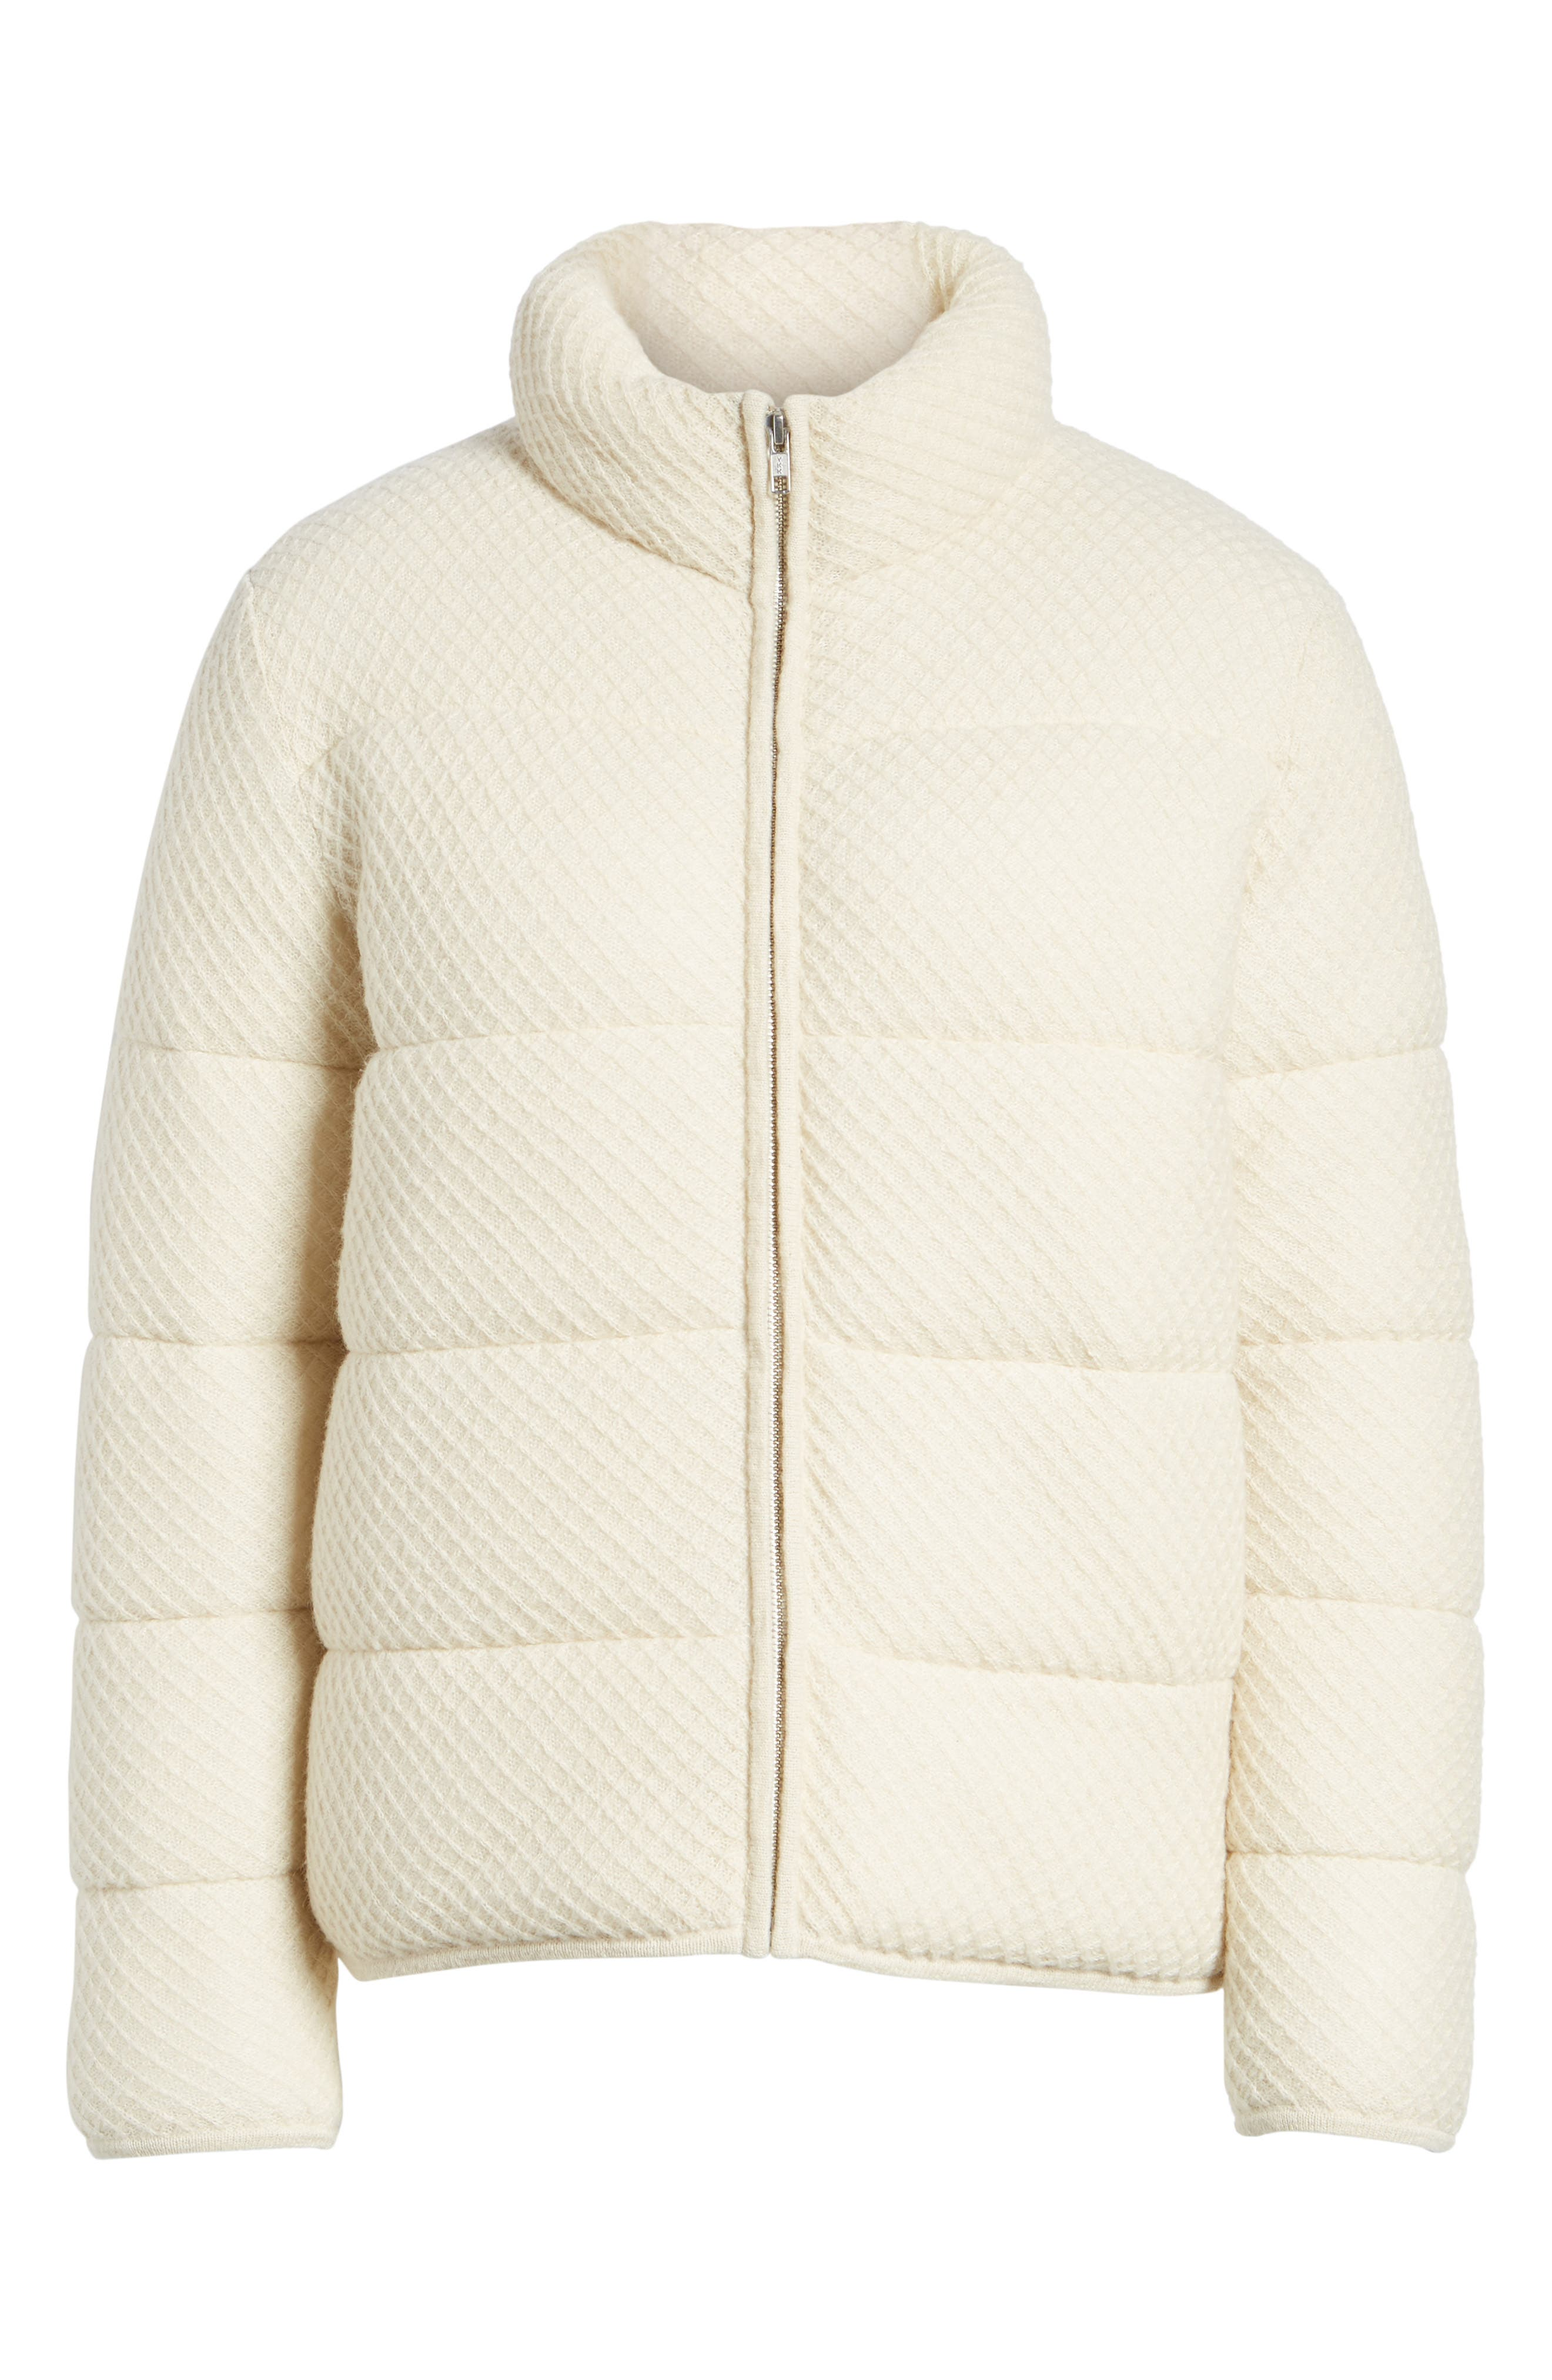 Knit Puffer Jacket,                             Alternate thumbnail 5, color,                             900